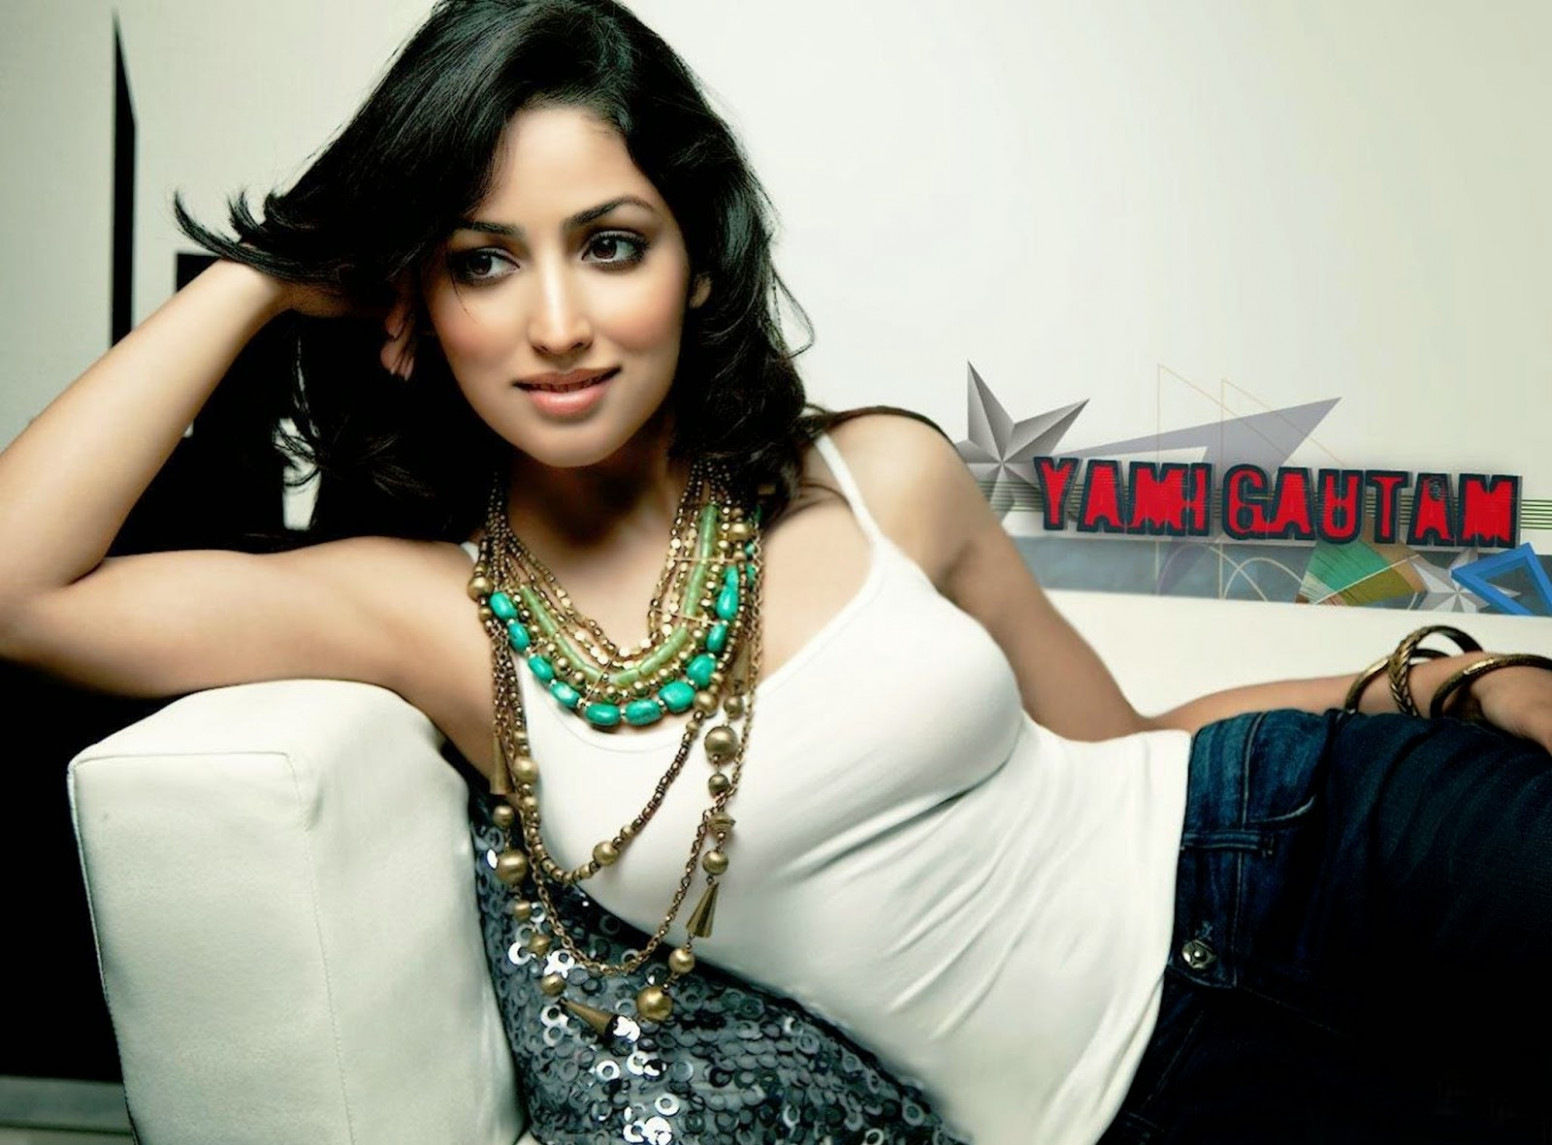 New Bollywood Actress Wallpaper 2015 - WallpaperSafari - new wallpaper bollywood actress